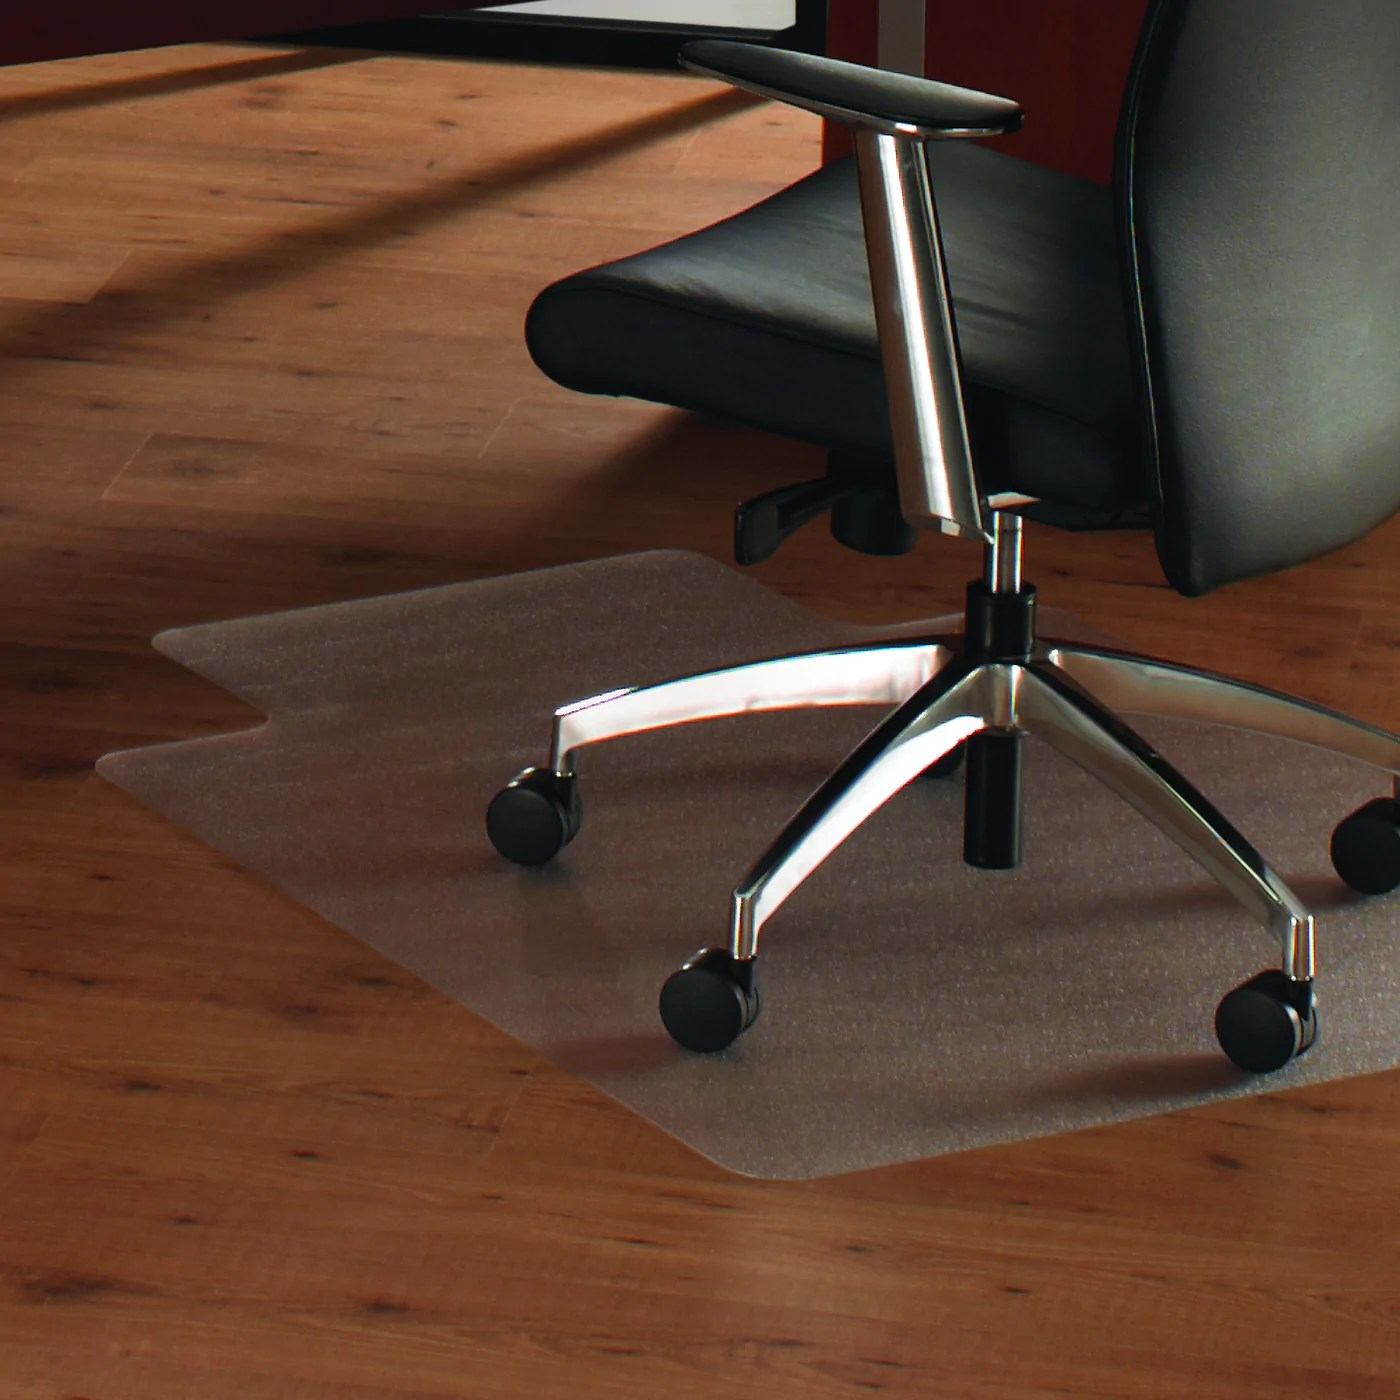 clear chair mat white dining room chairs target cleartex anti slip unomat for polished or high gloss hard floors